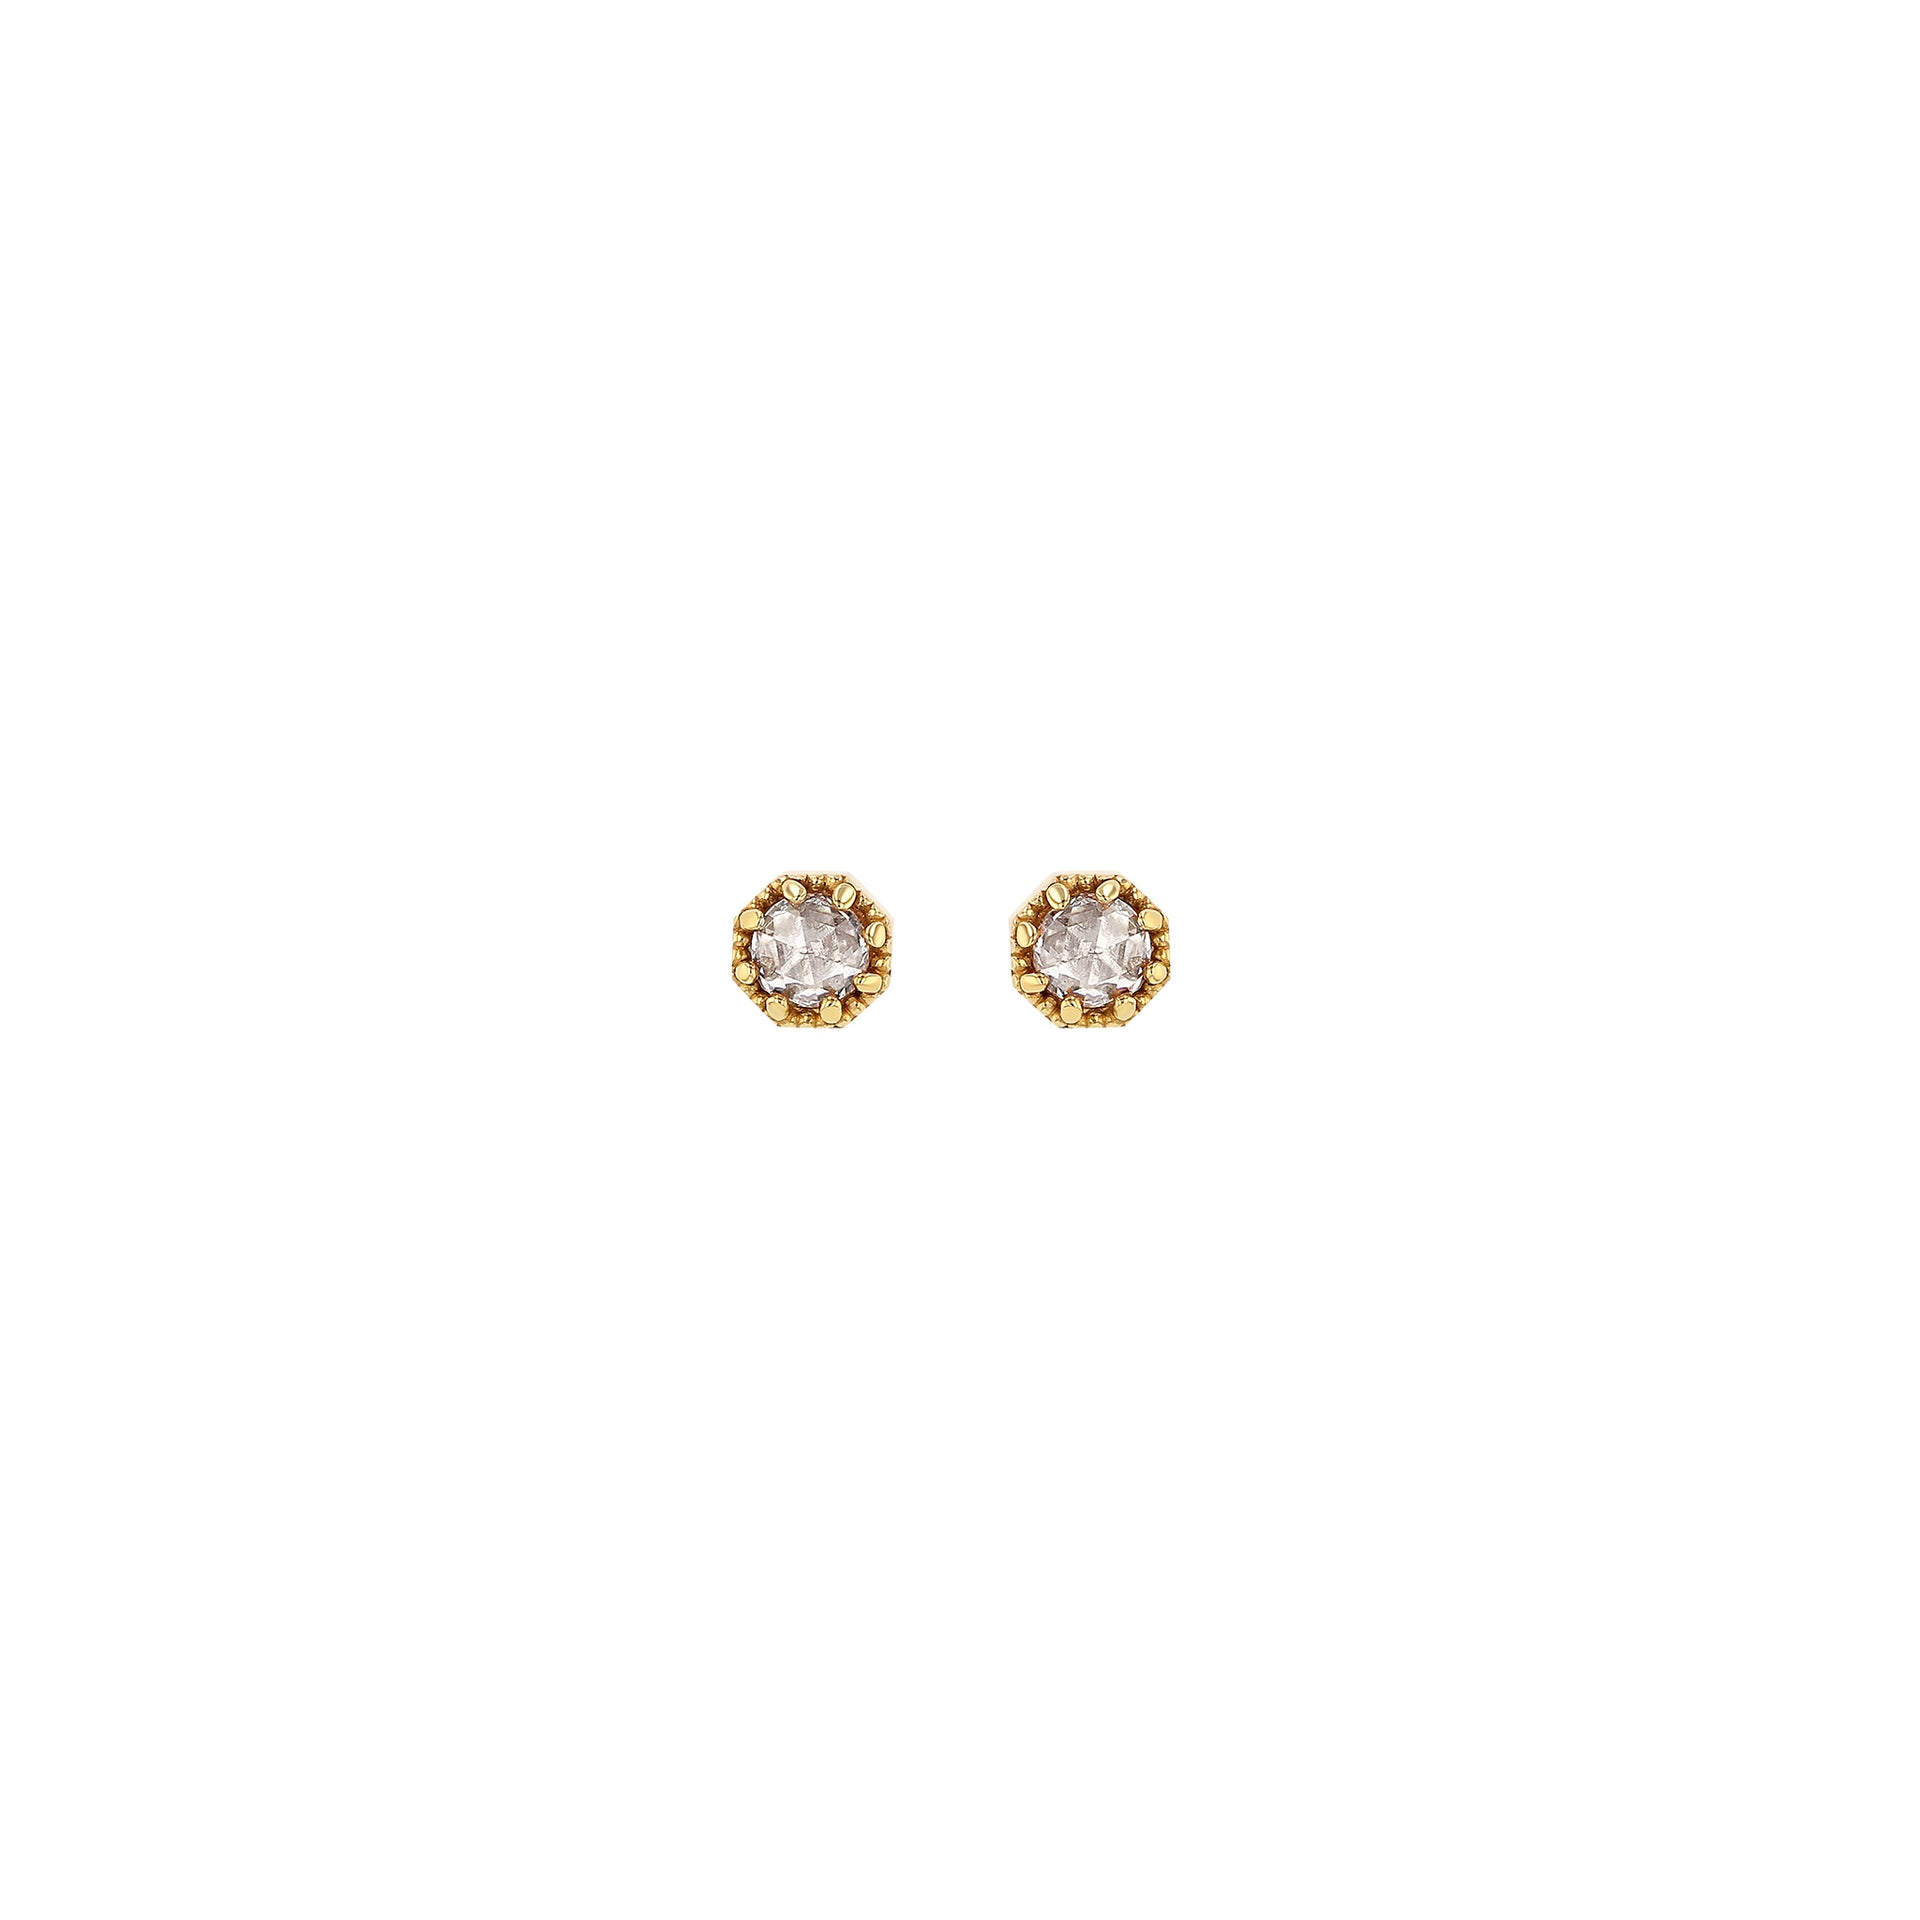 Petite Crown Bezel Diamond Earrings - RTS